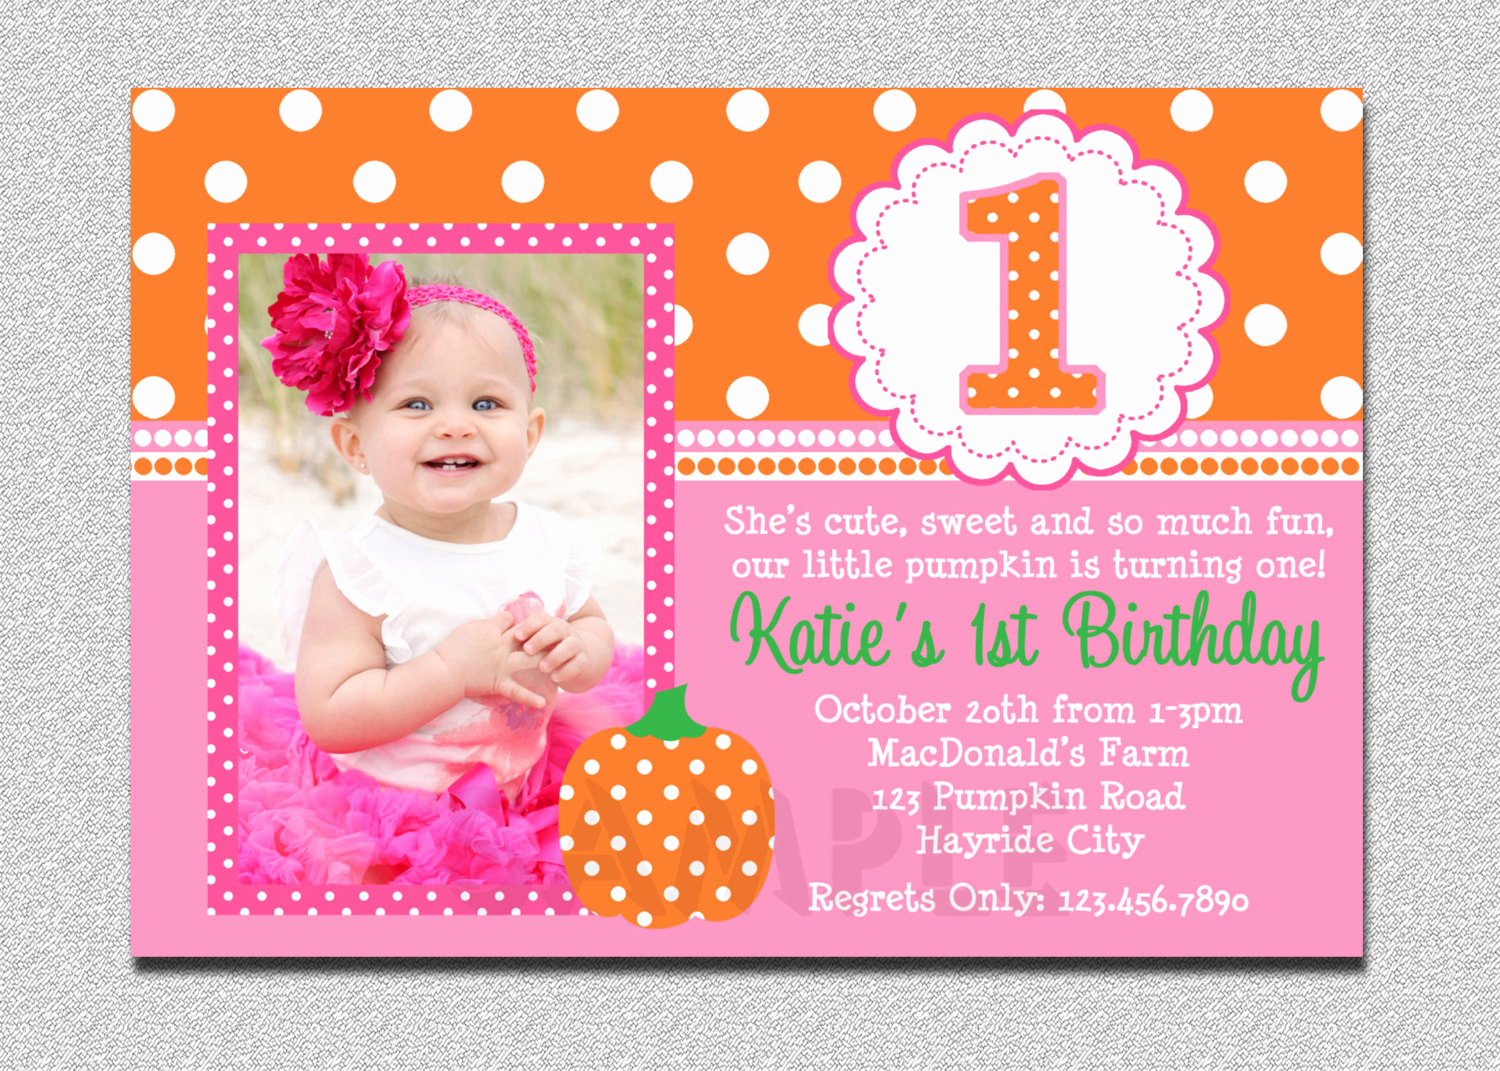 1st Birthday Invitation Wording Awesome Free Templates for Birthday Invitations